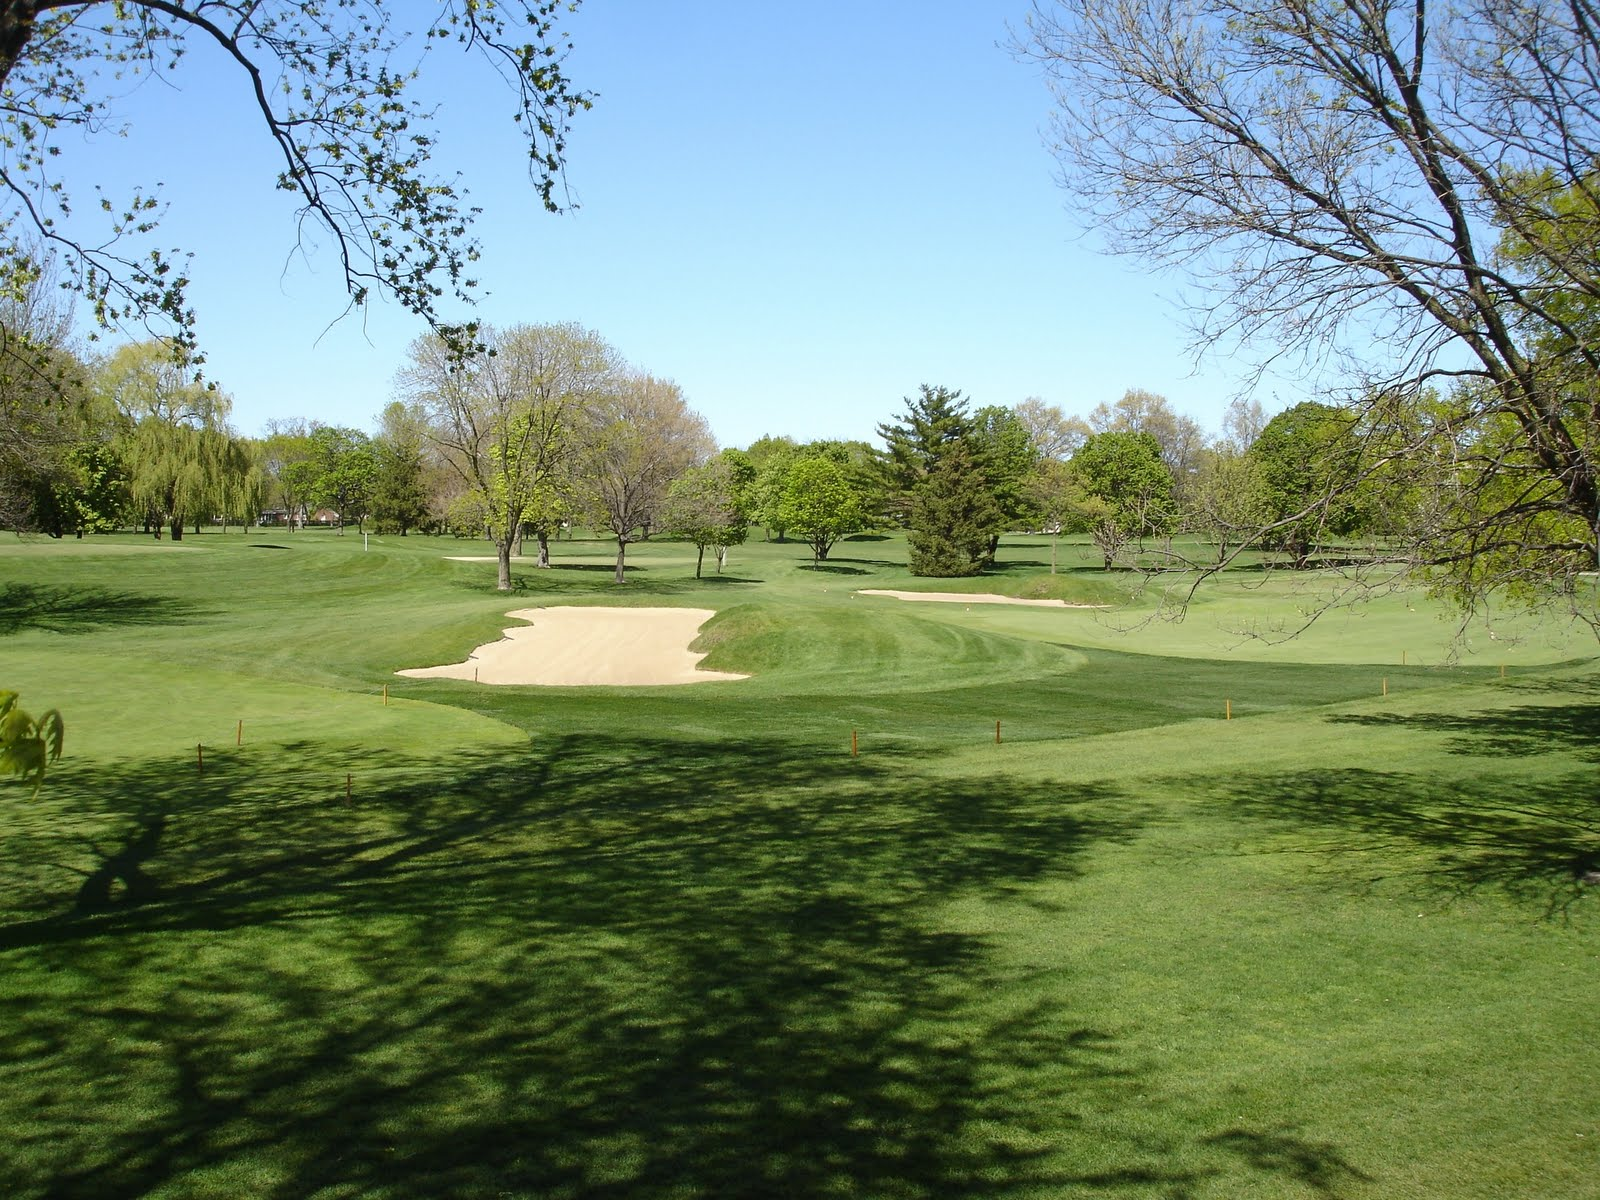 Things to look out for park ridge country club turfgrass for Park ridge